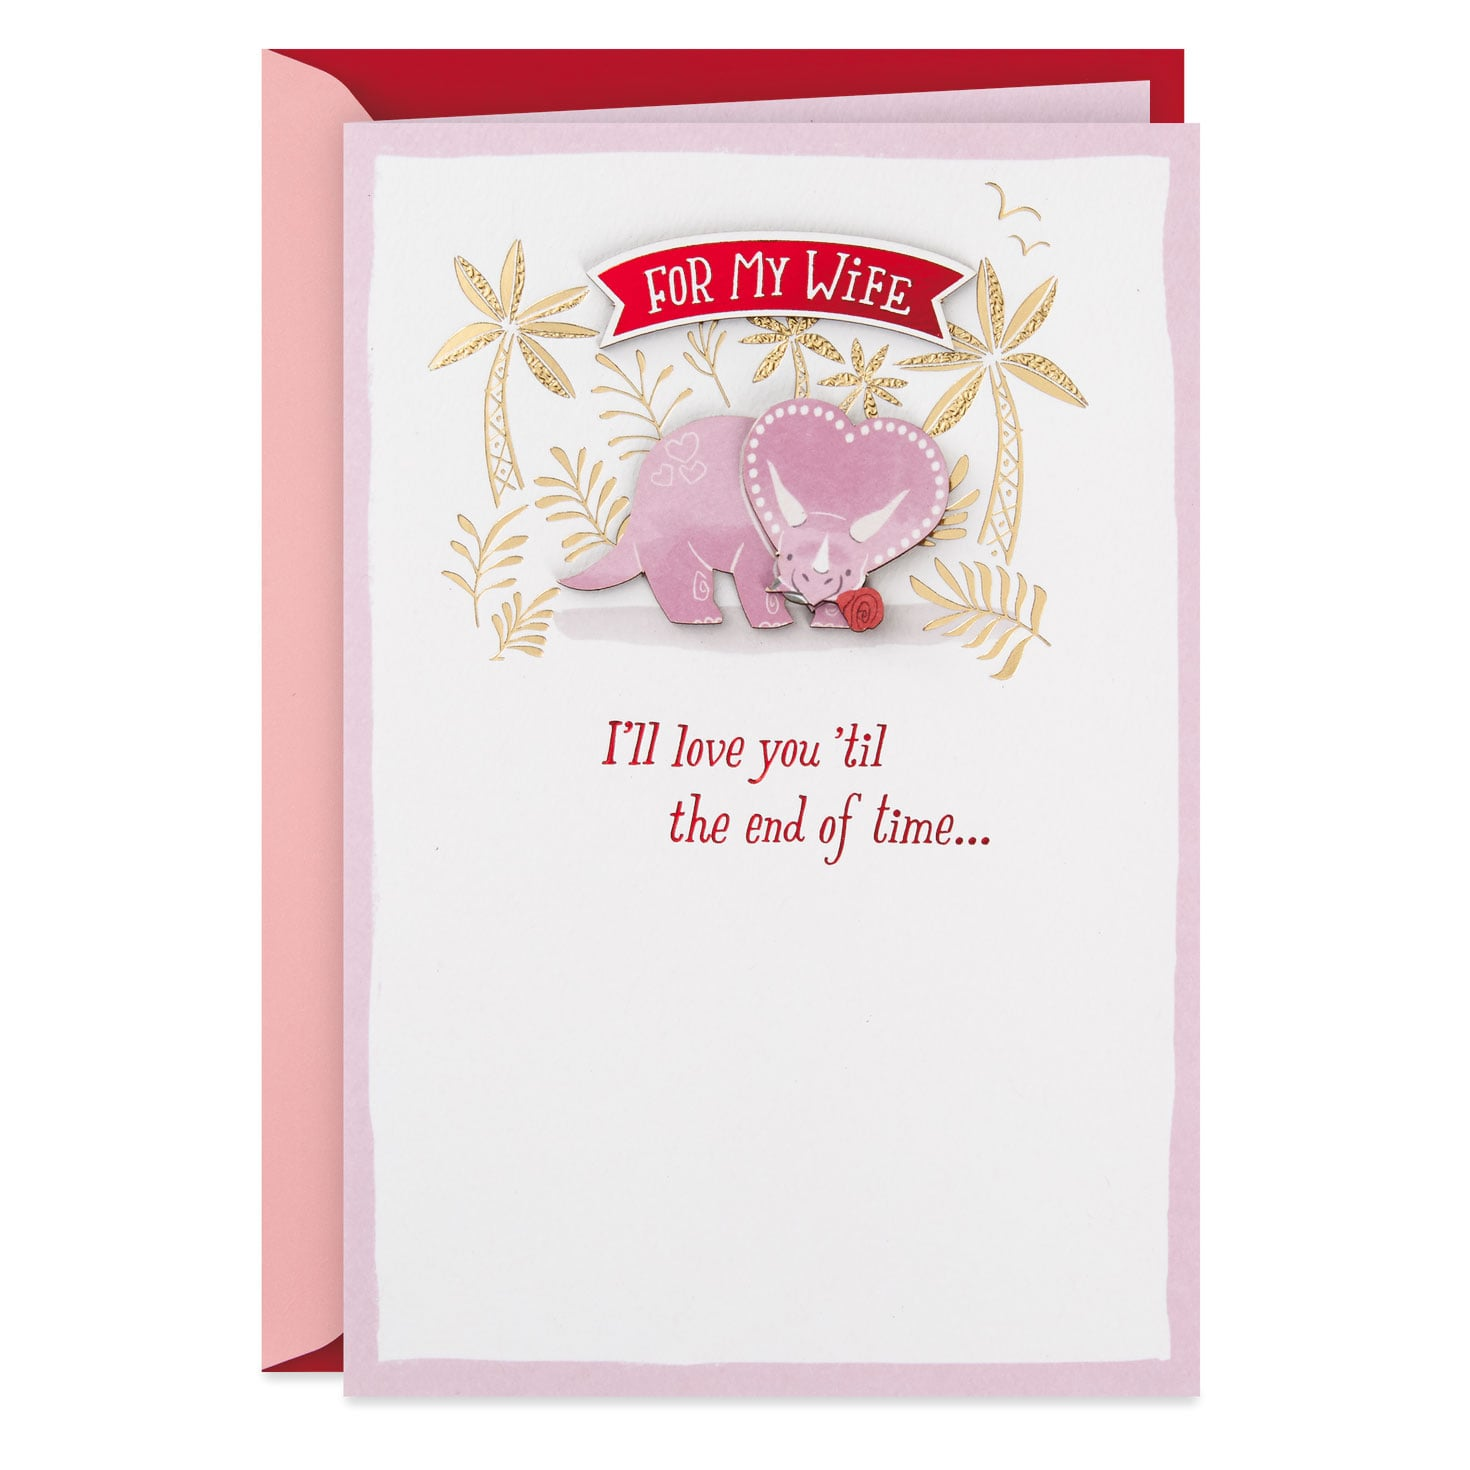 love you until the end of time valentine's day card for